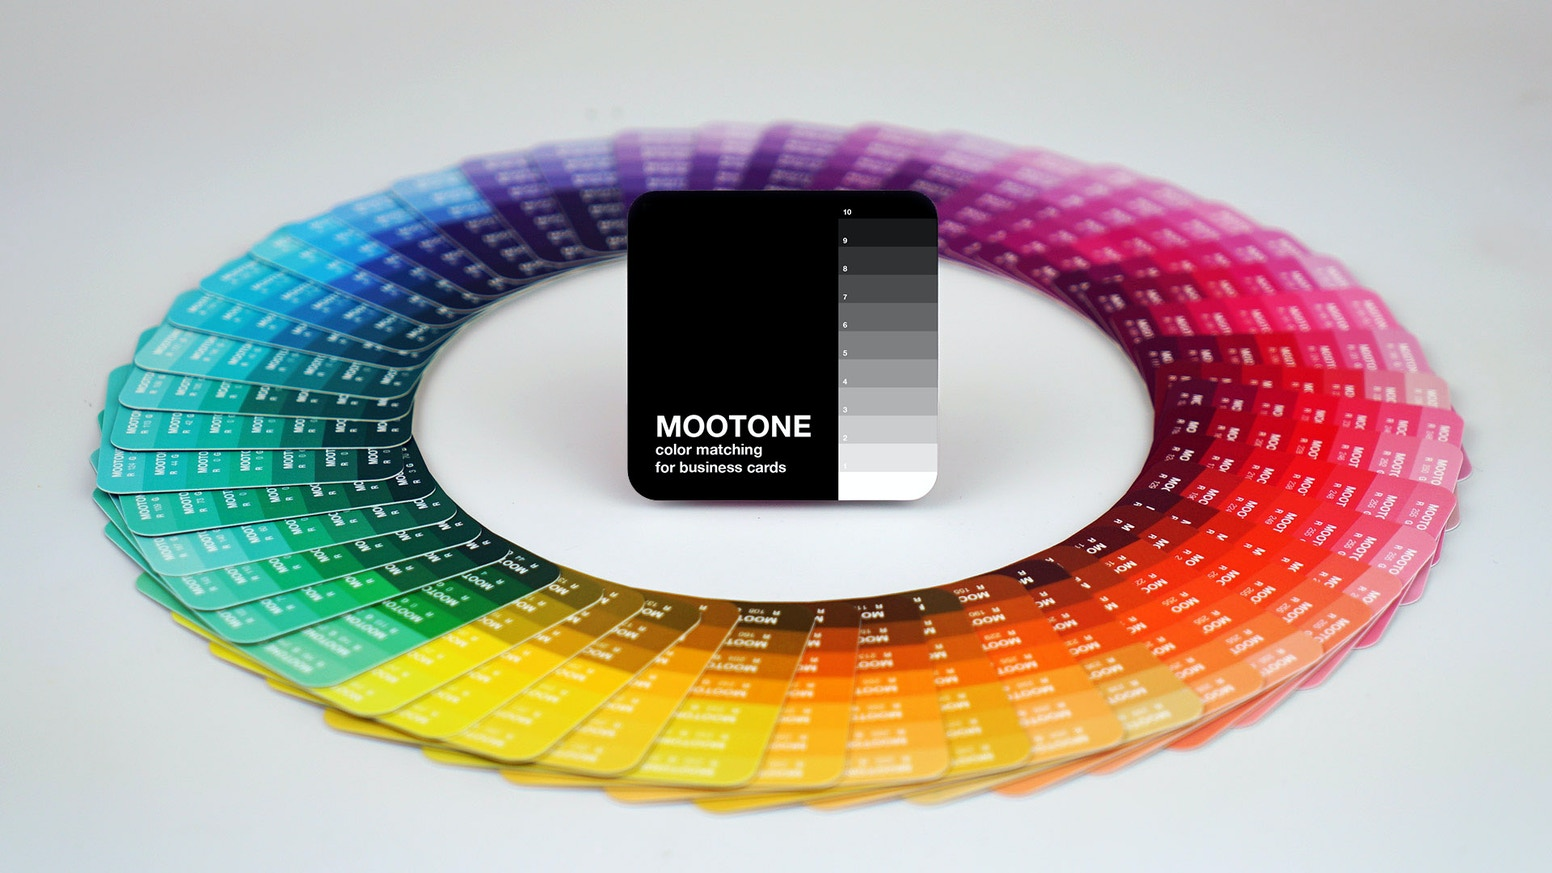 Mootone Color Matching System For Moo Cards By Jonathan Bobrow